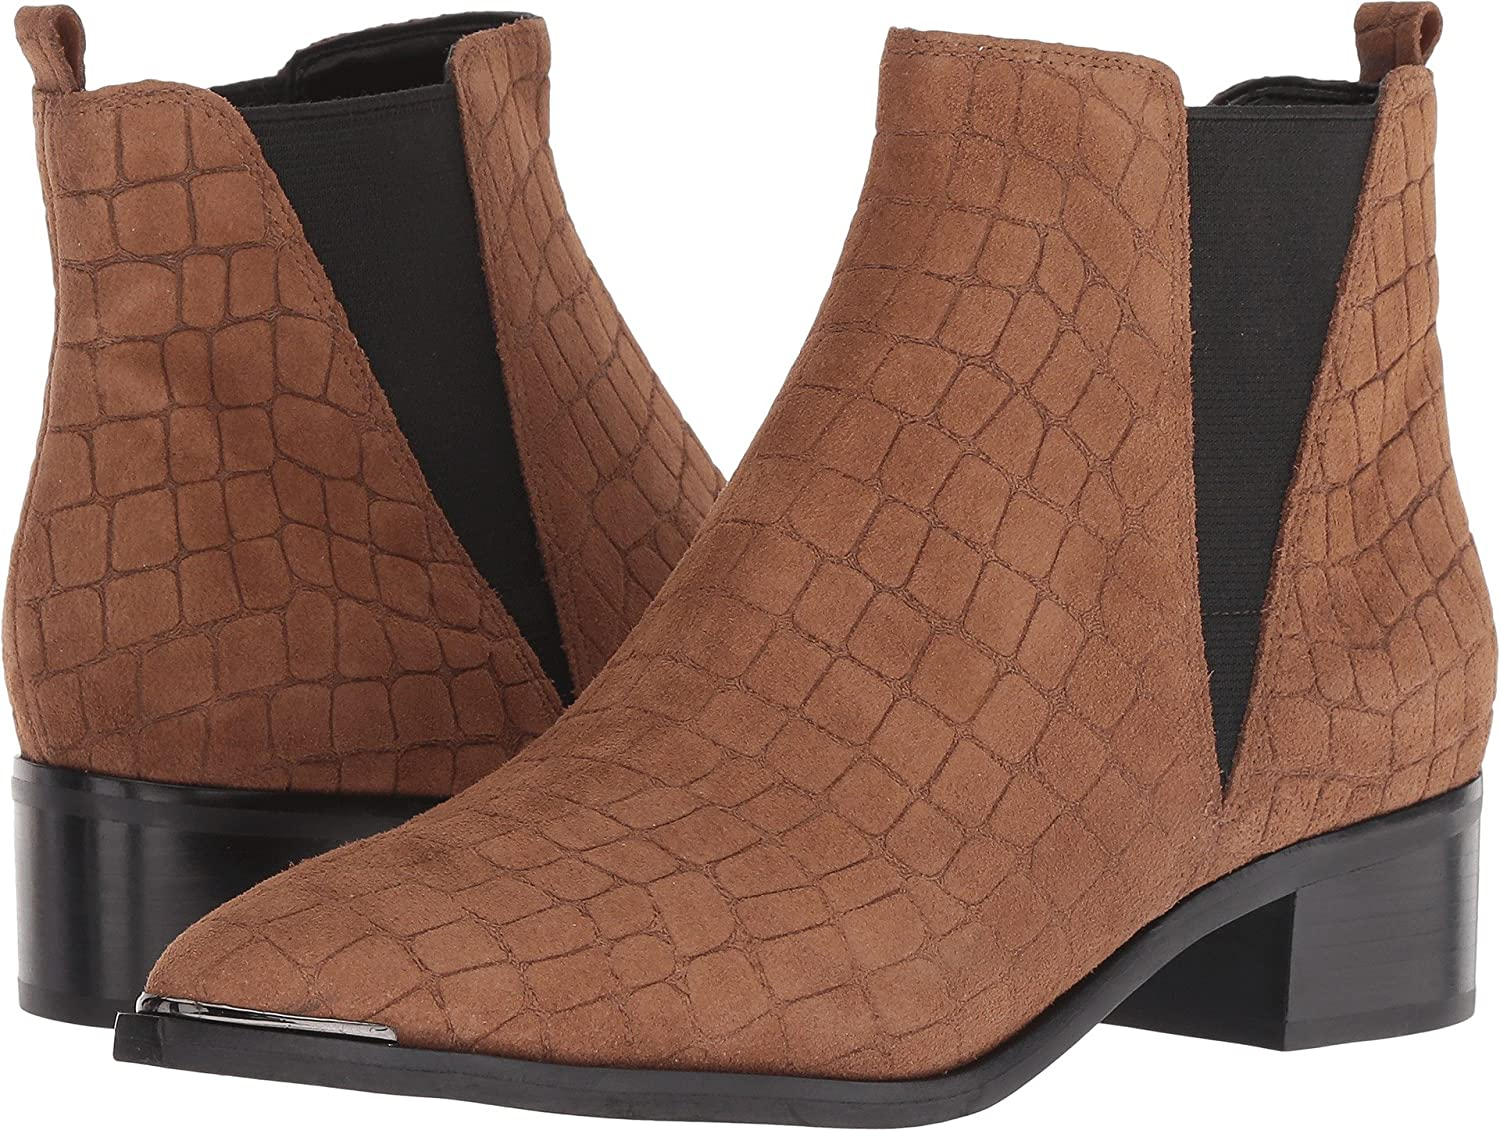 Cognac Croc Suede Marc Fisher LTD Women's Yale Ankle Bootie